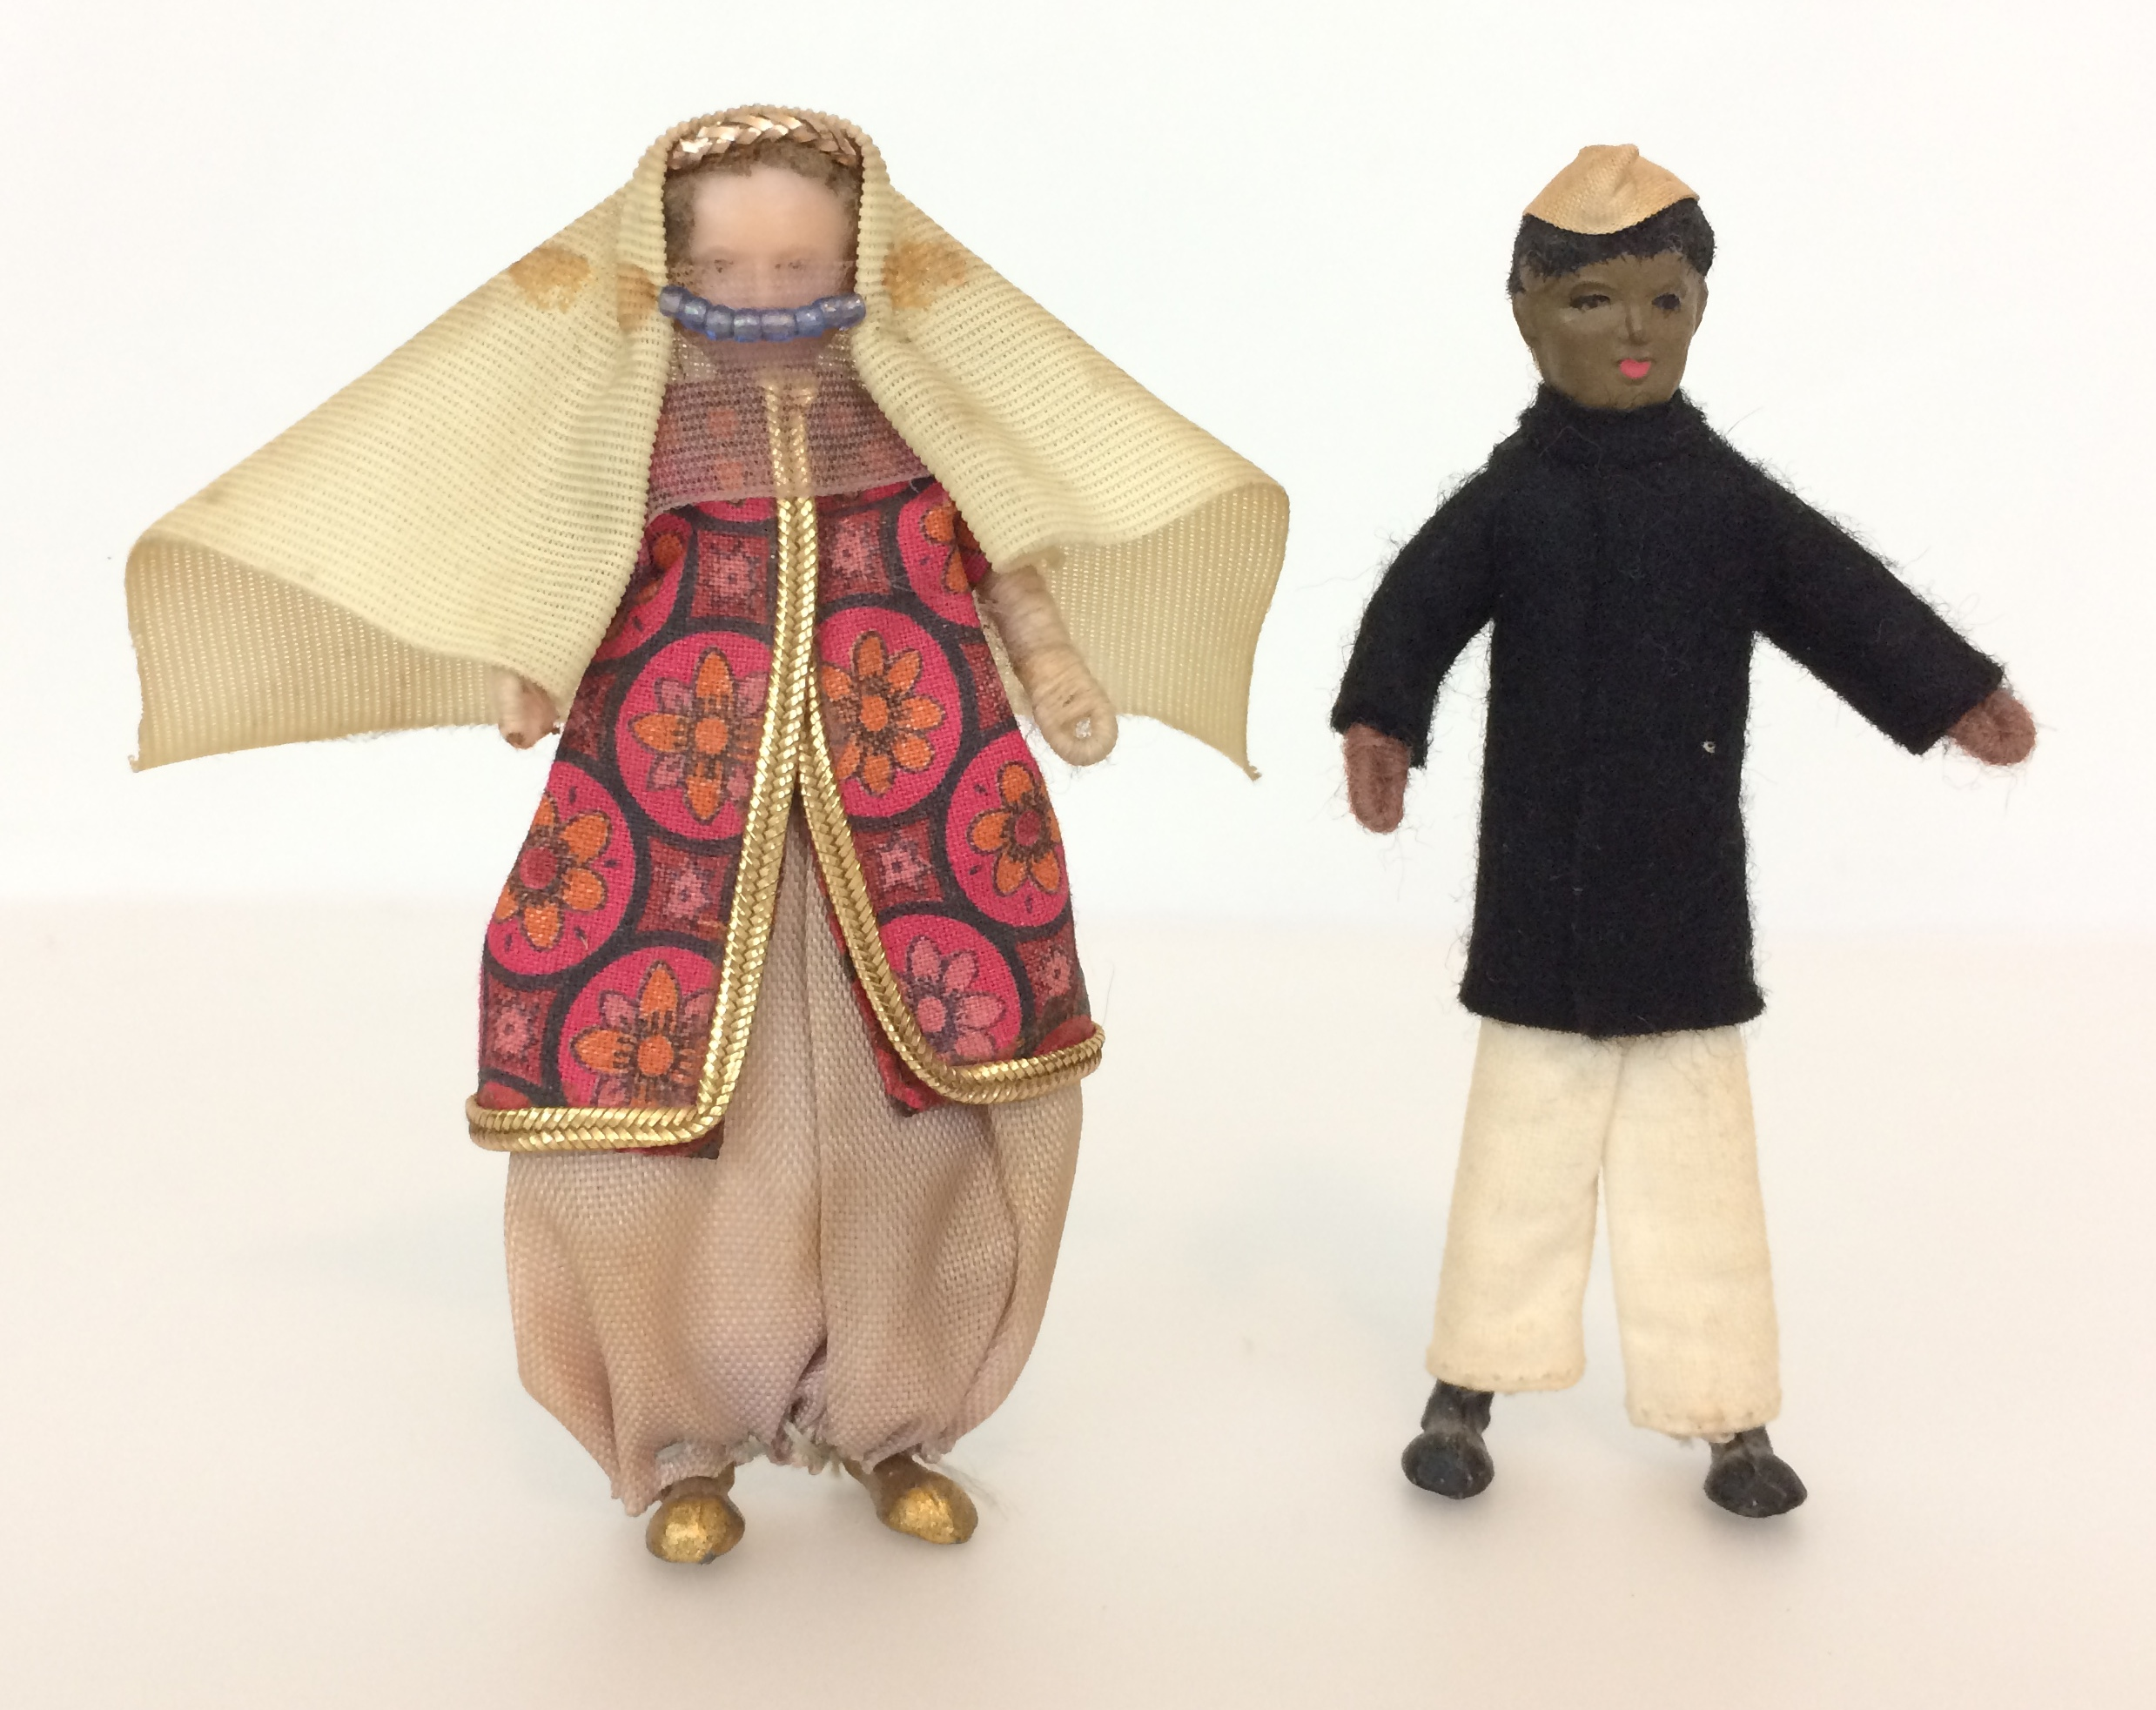 Doltoi dolls dressed in national costume, woman wearing a yashmak and man wearing a topi cap